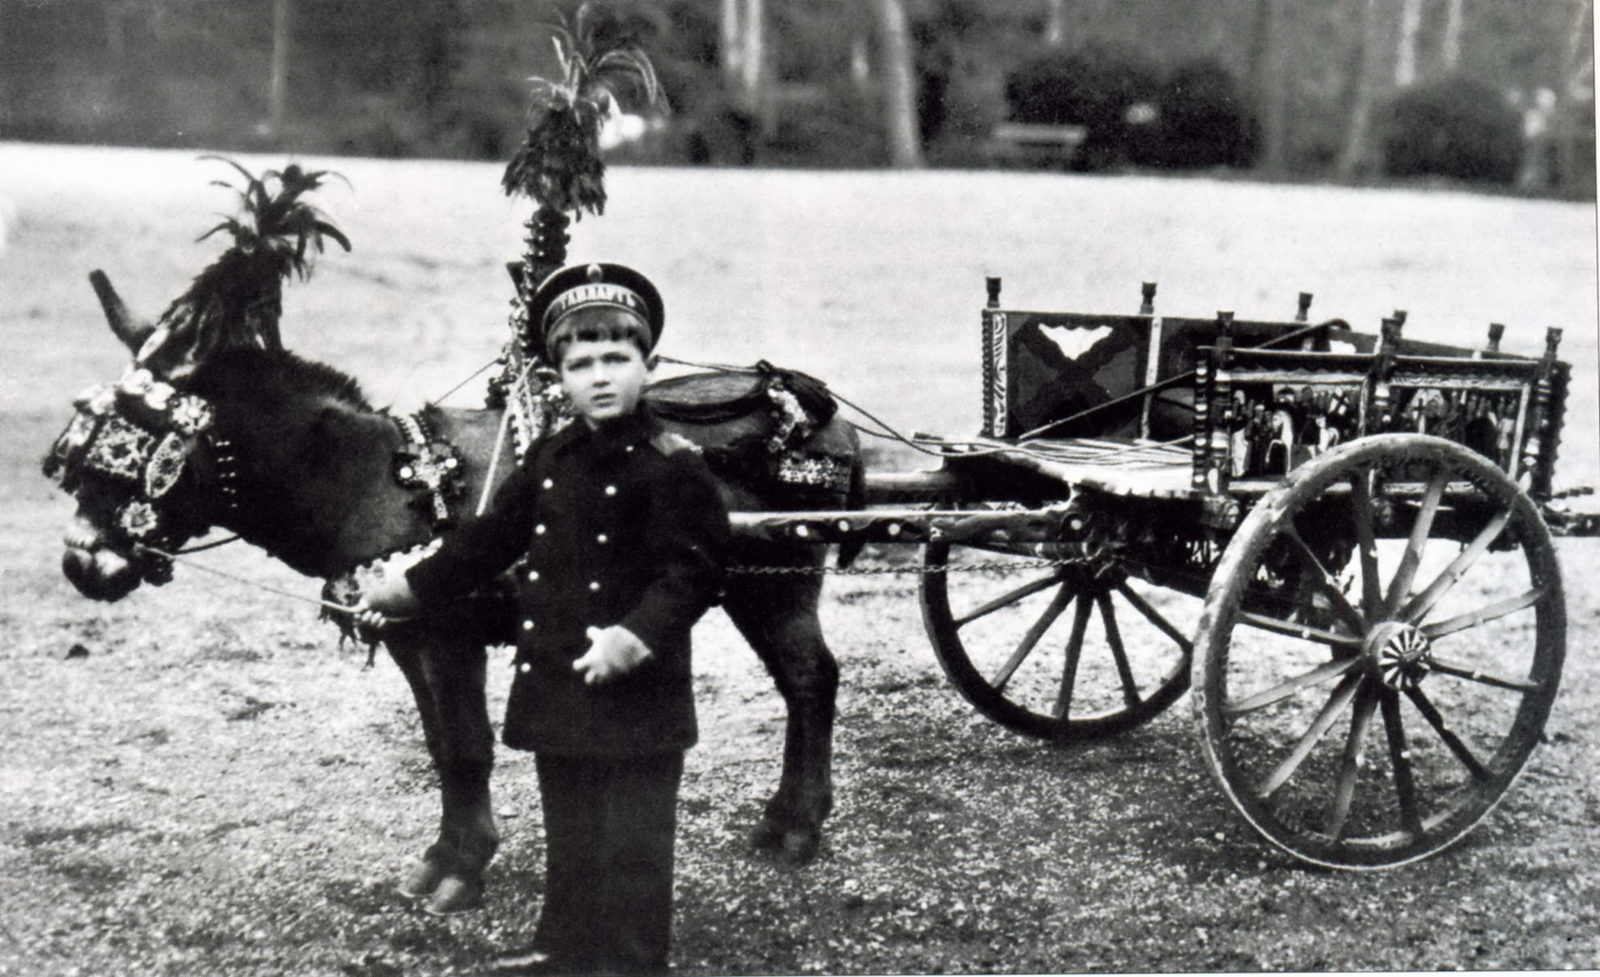 Tsarevich Alexei Nikolayevich on a walk with his pet donkey Vanka.